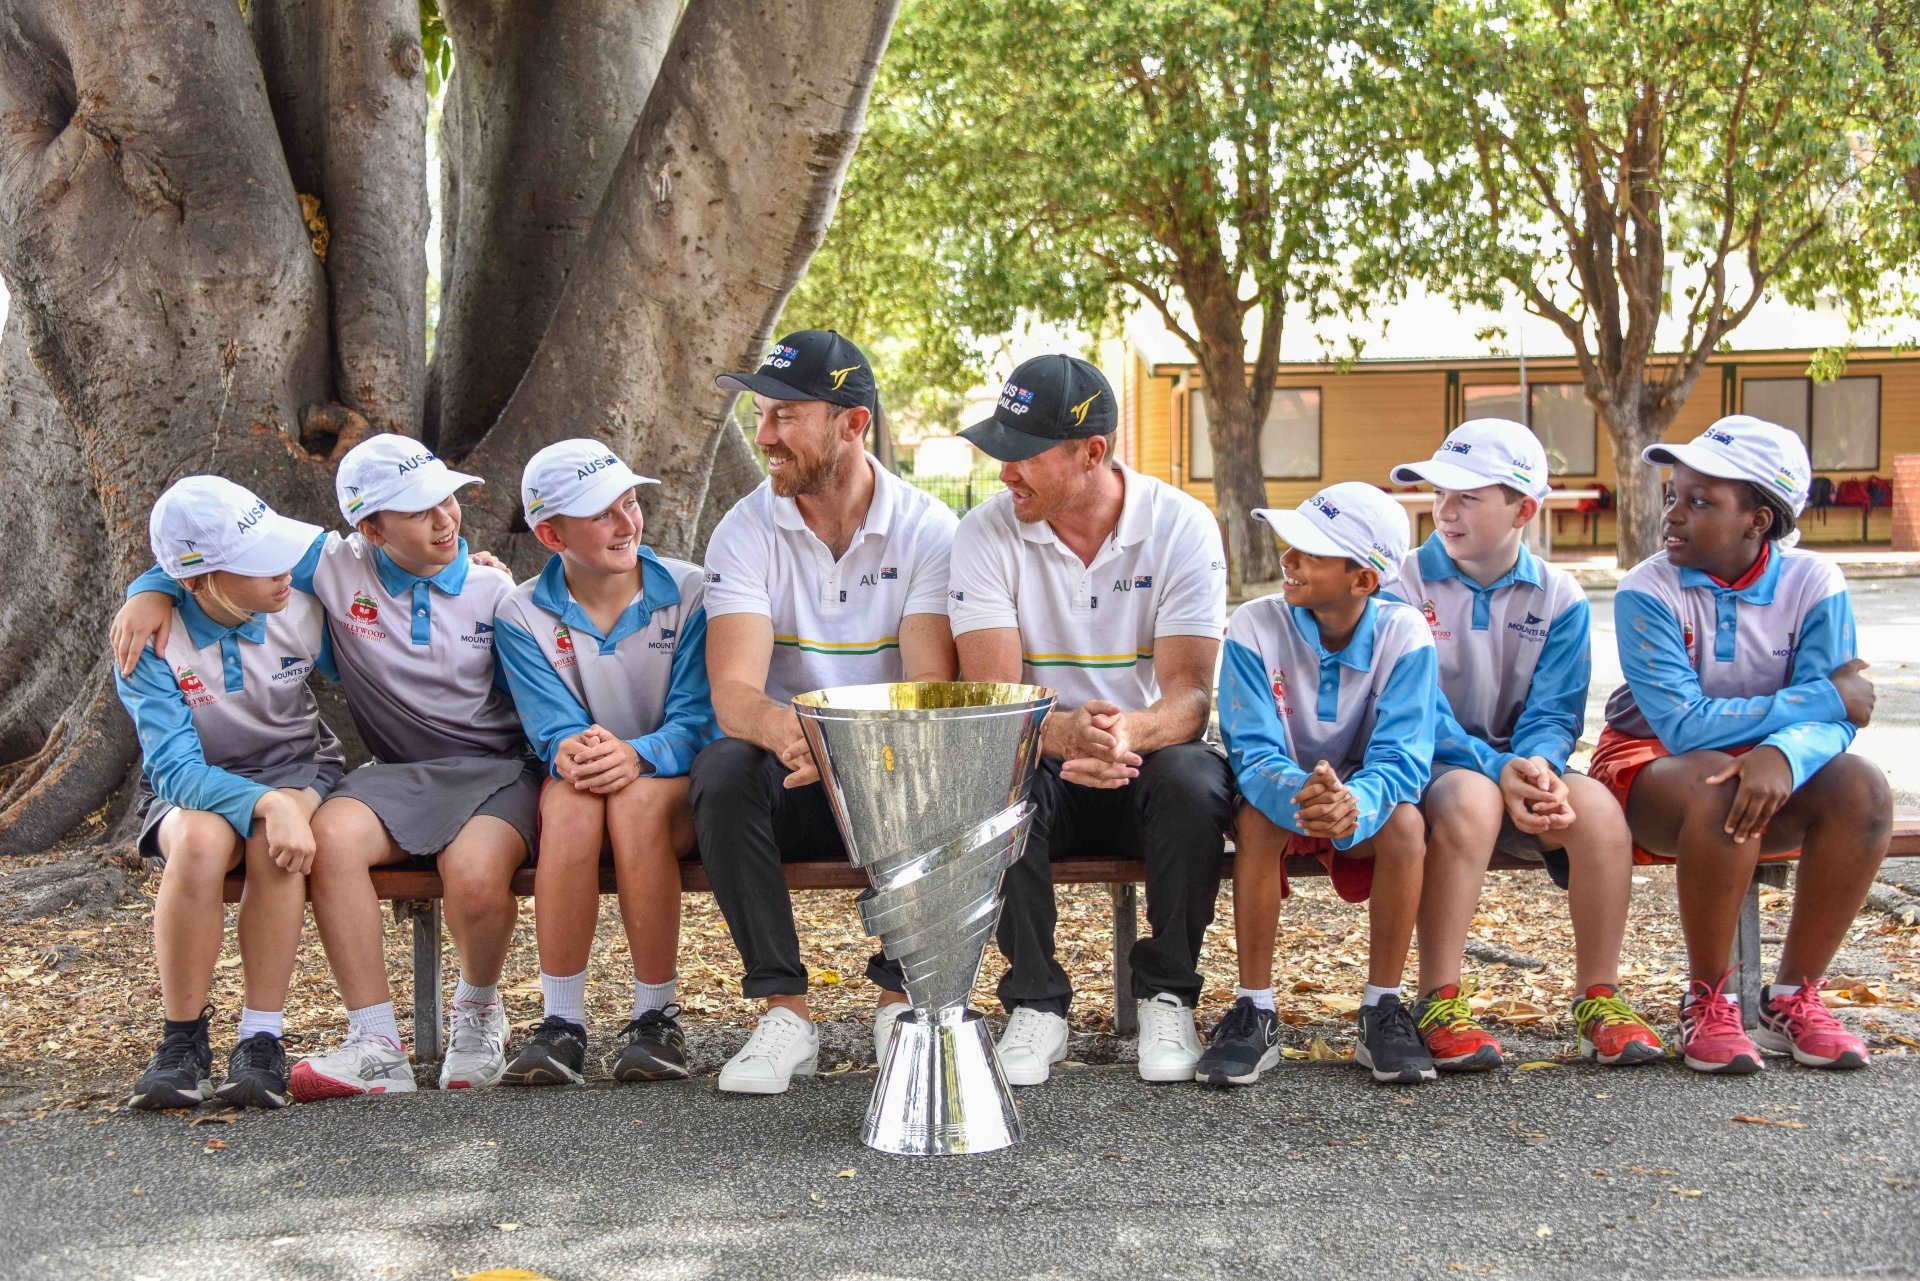 Tom Slingsby and Perth local Kinley Fowler take SailGP Championship Trophy Tour to Perth to celebrate historic win